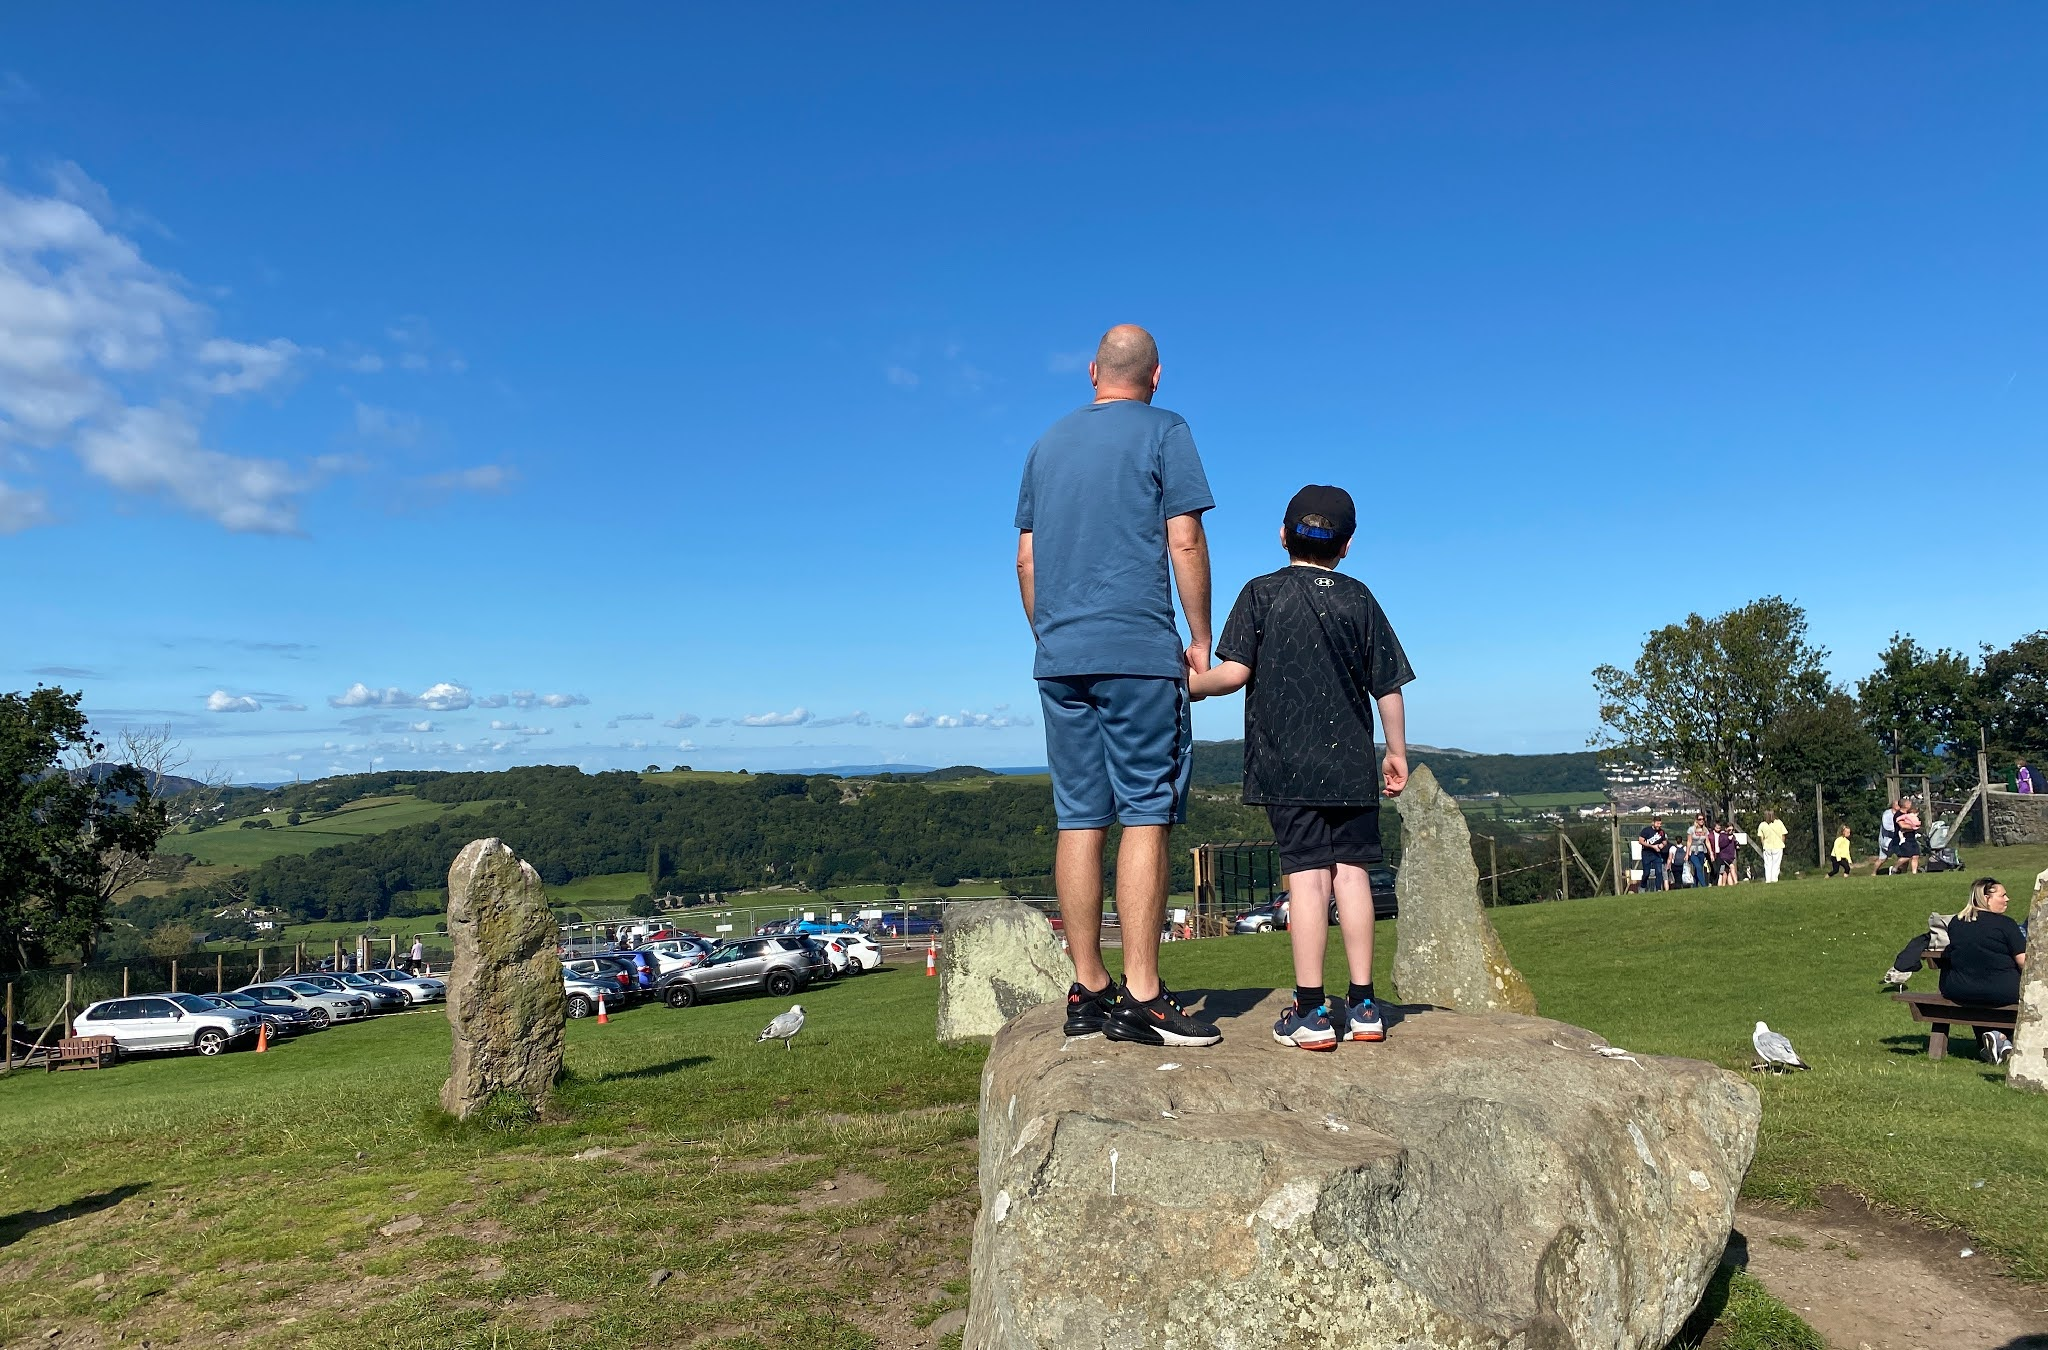 Dad and son standing on a large rock